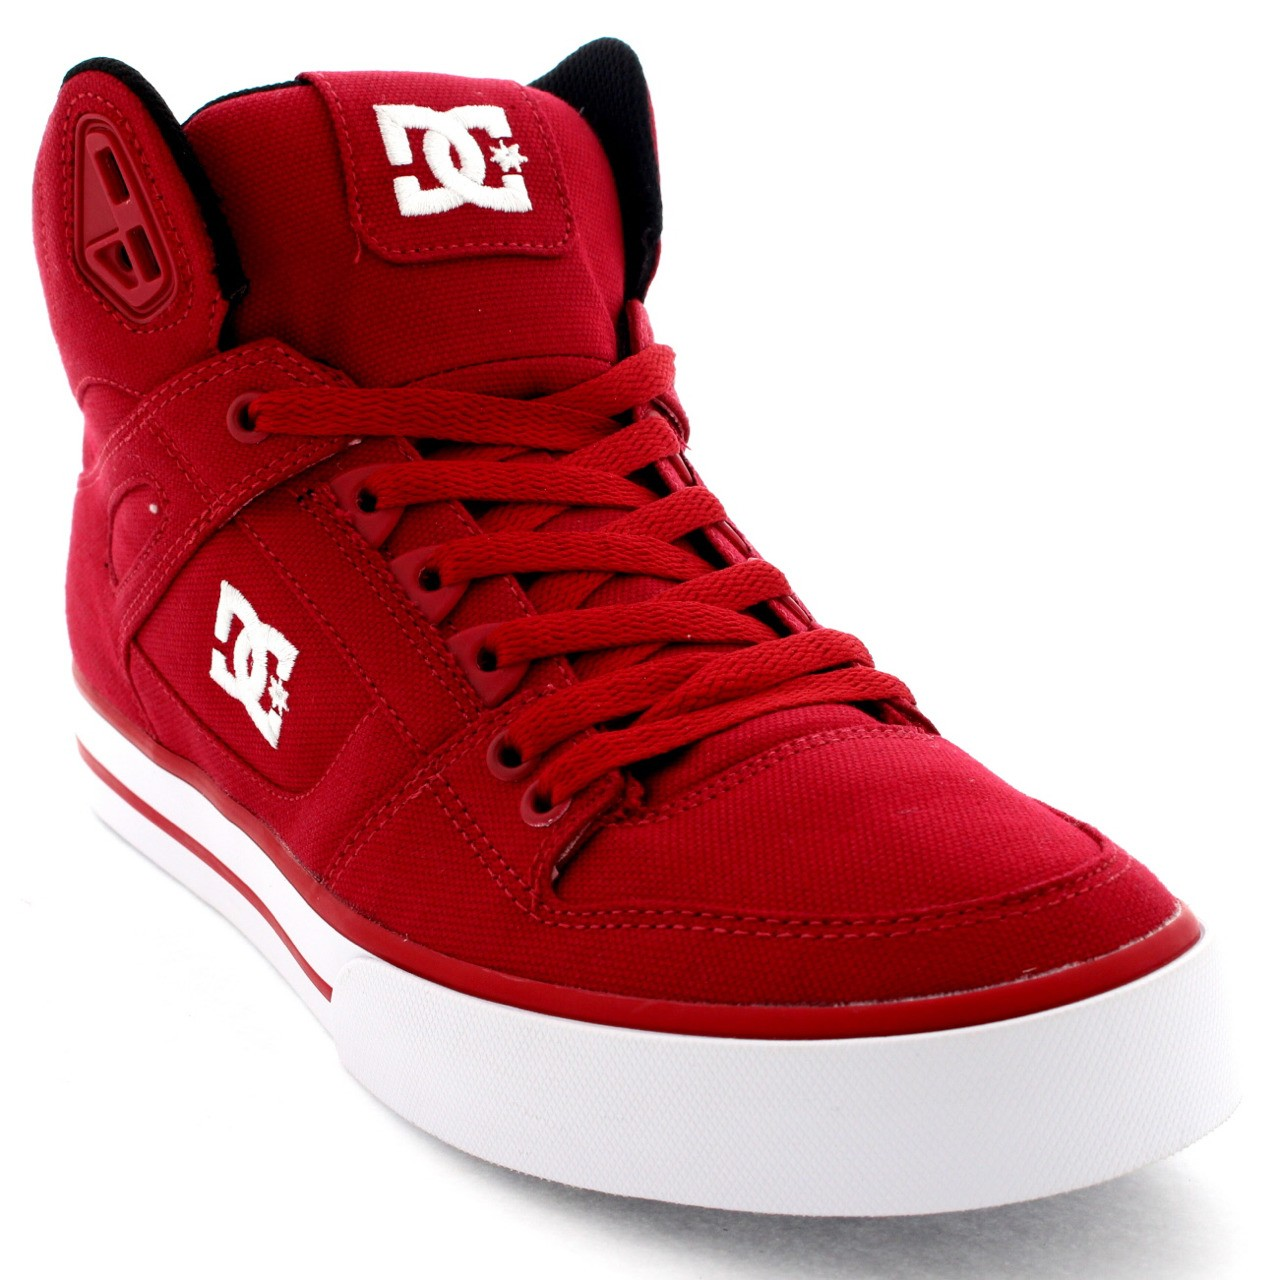 Mens DC Shoes Spartan High Textile Lace Up High Top Skate Shoes Trainers UK 7-12 in Clothes, Shoes & Accessories, Men's Shoes, Trainers | eBay!